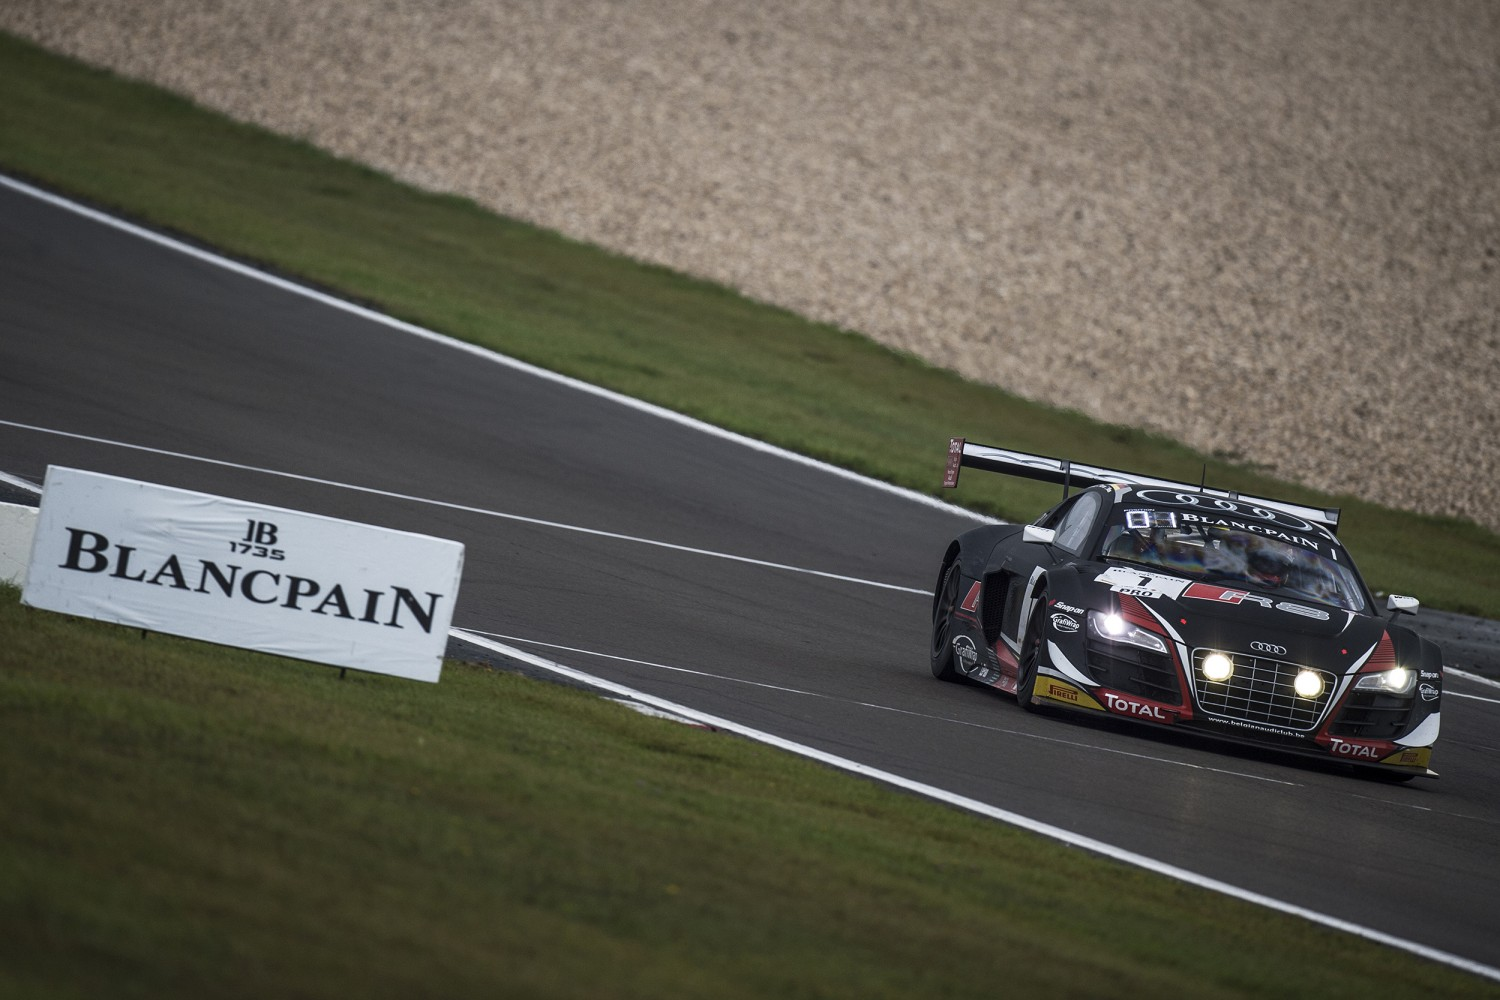 Laurens Vanthoor takes Pro Cup title in 2014 Blancpain Endurance Series